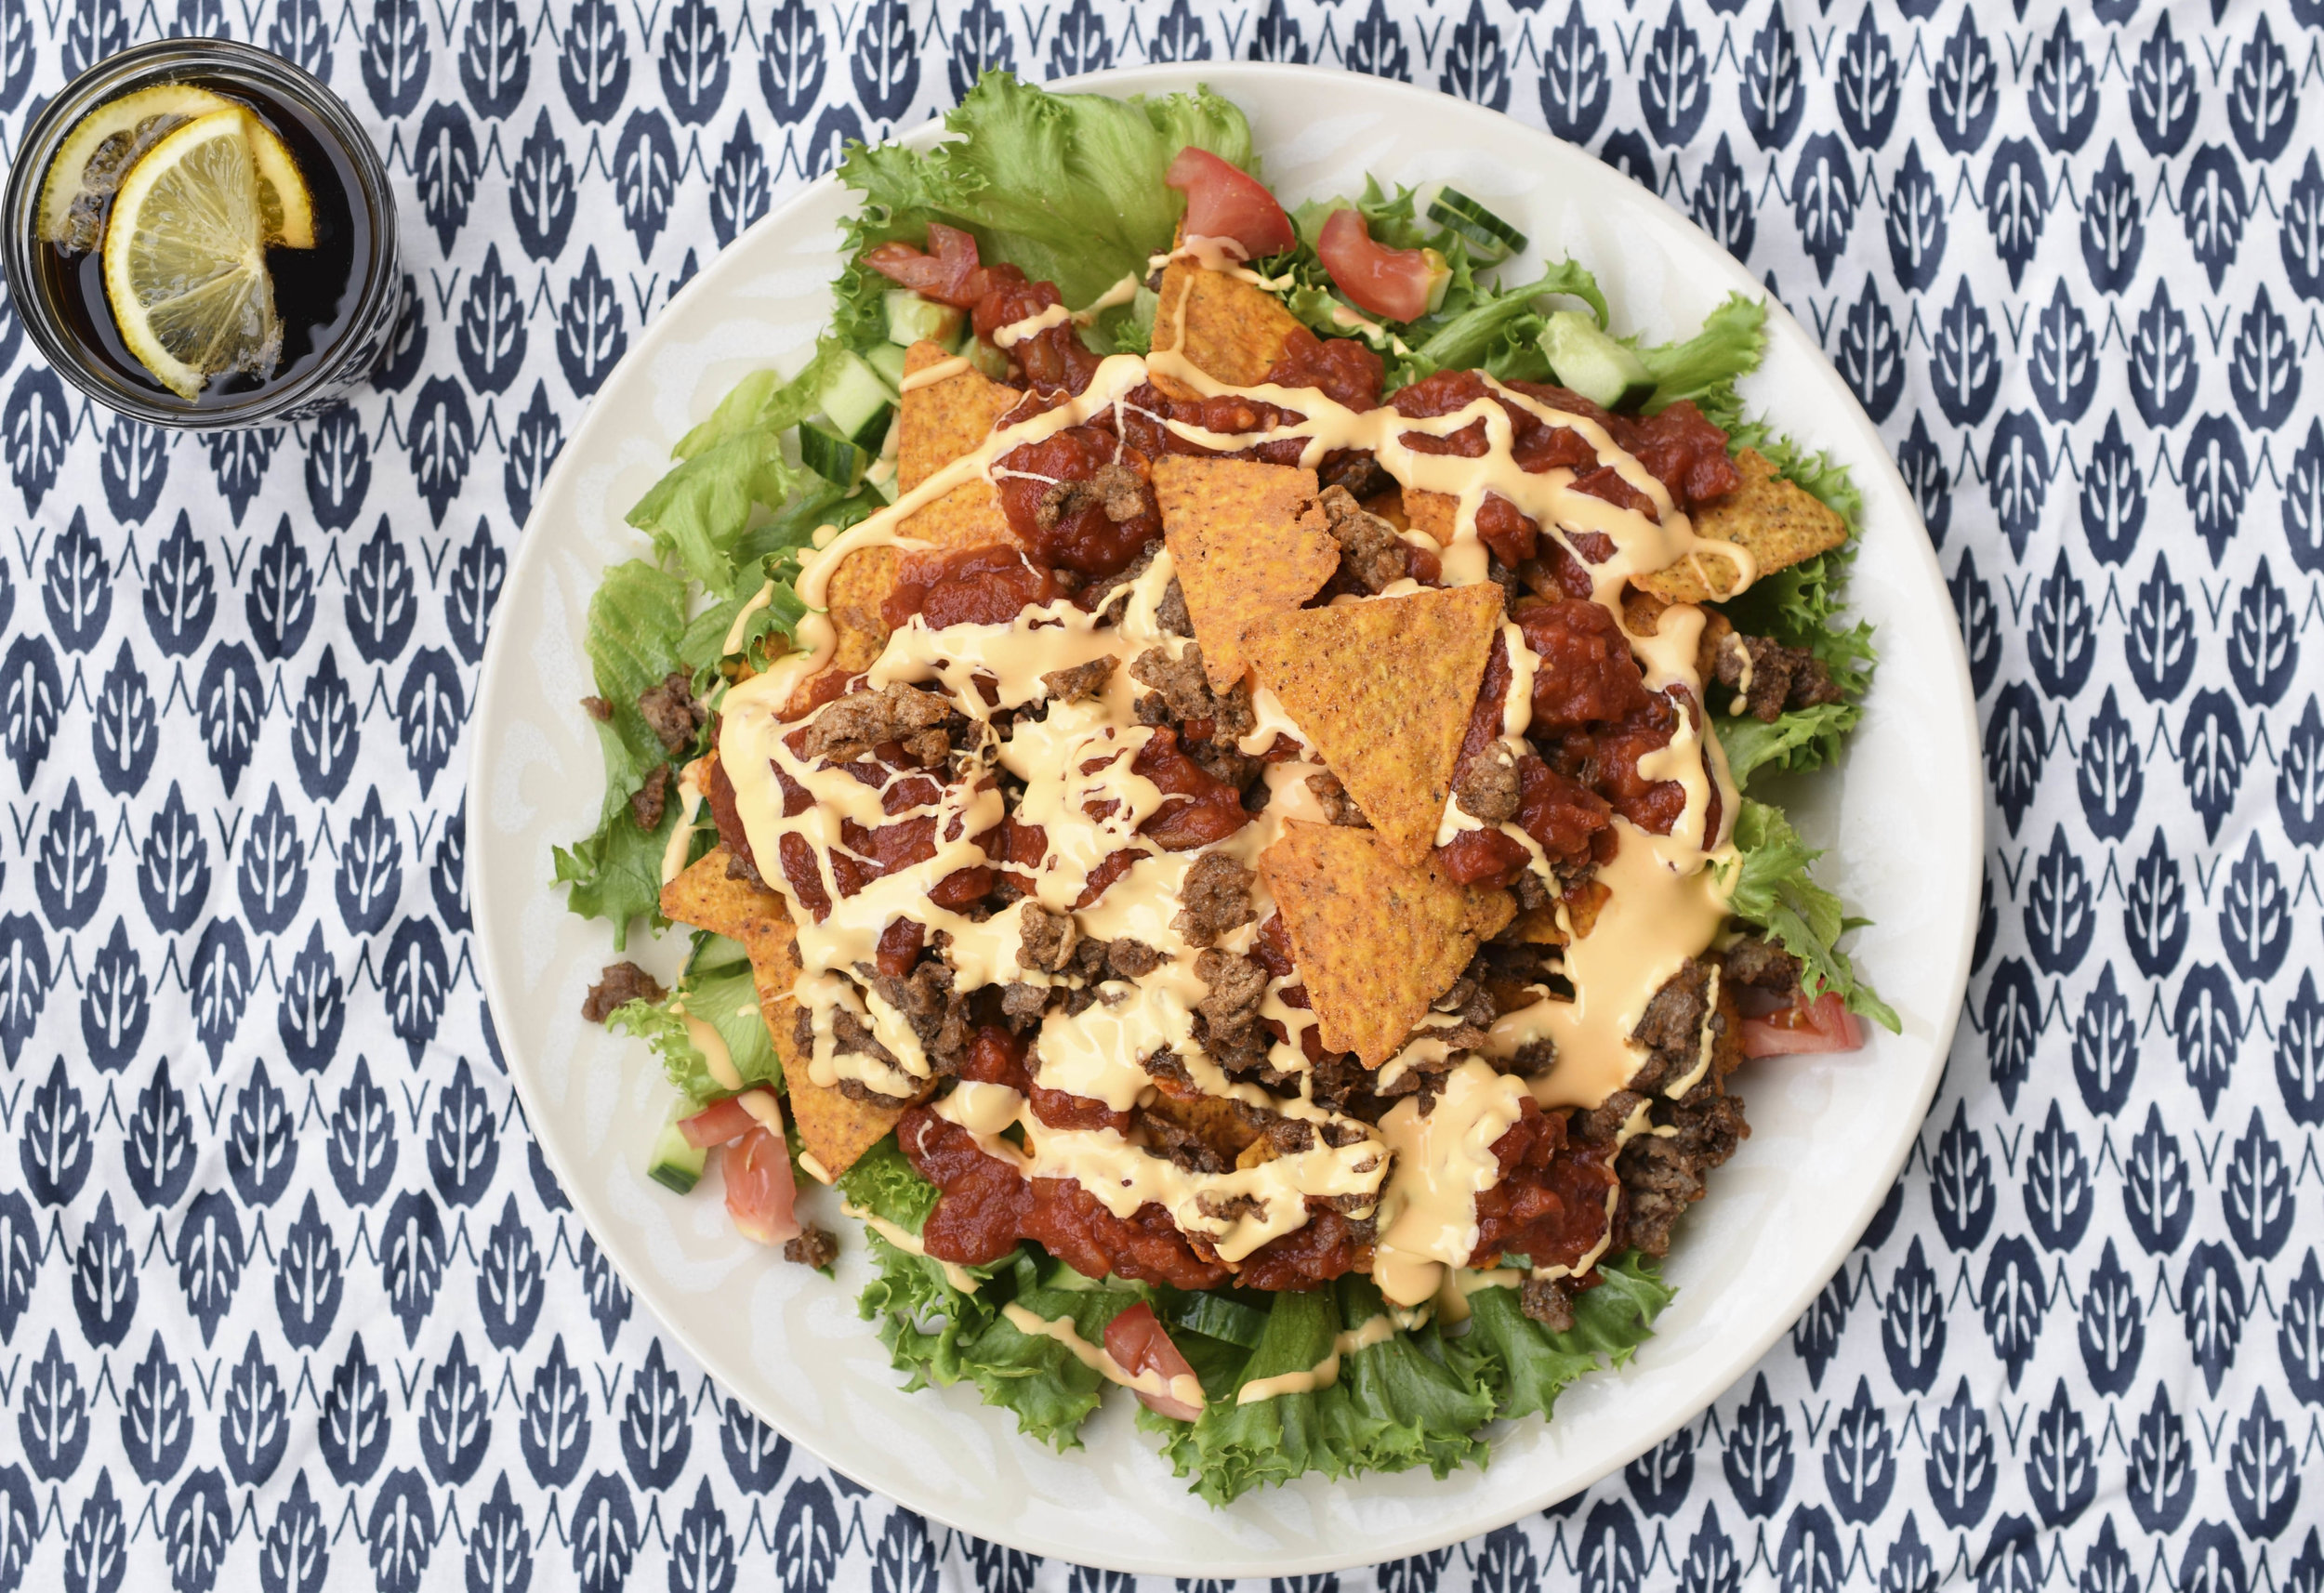 SIRKKIS® - NACHO PLATE - 1 Package of Sirkkis®1 Table Spoon of Olive OilLettuceCucumberRed PepperAvocadoSalsaNachosCheddar Dressing